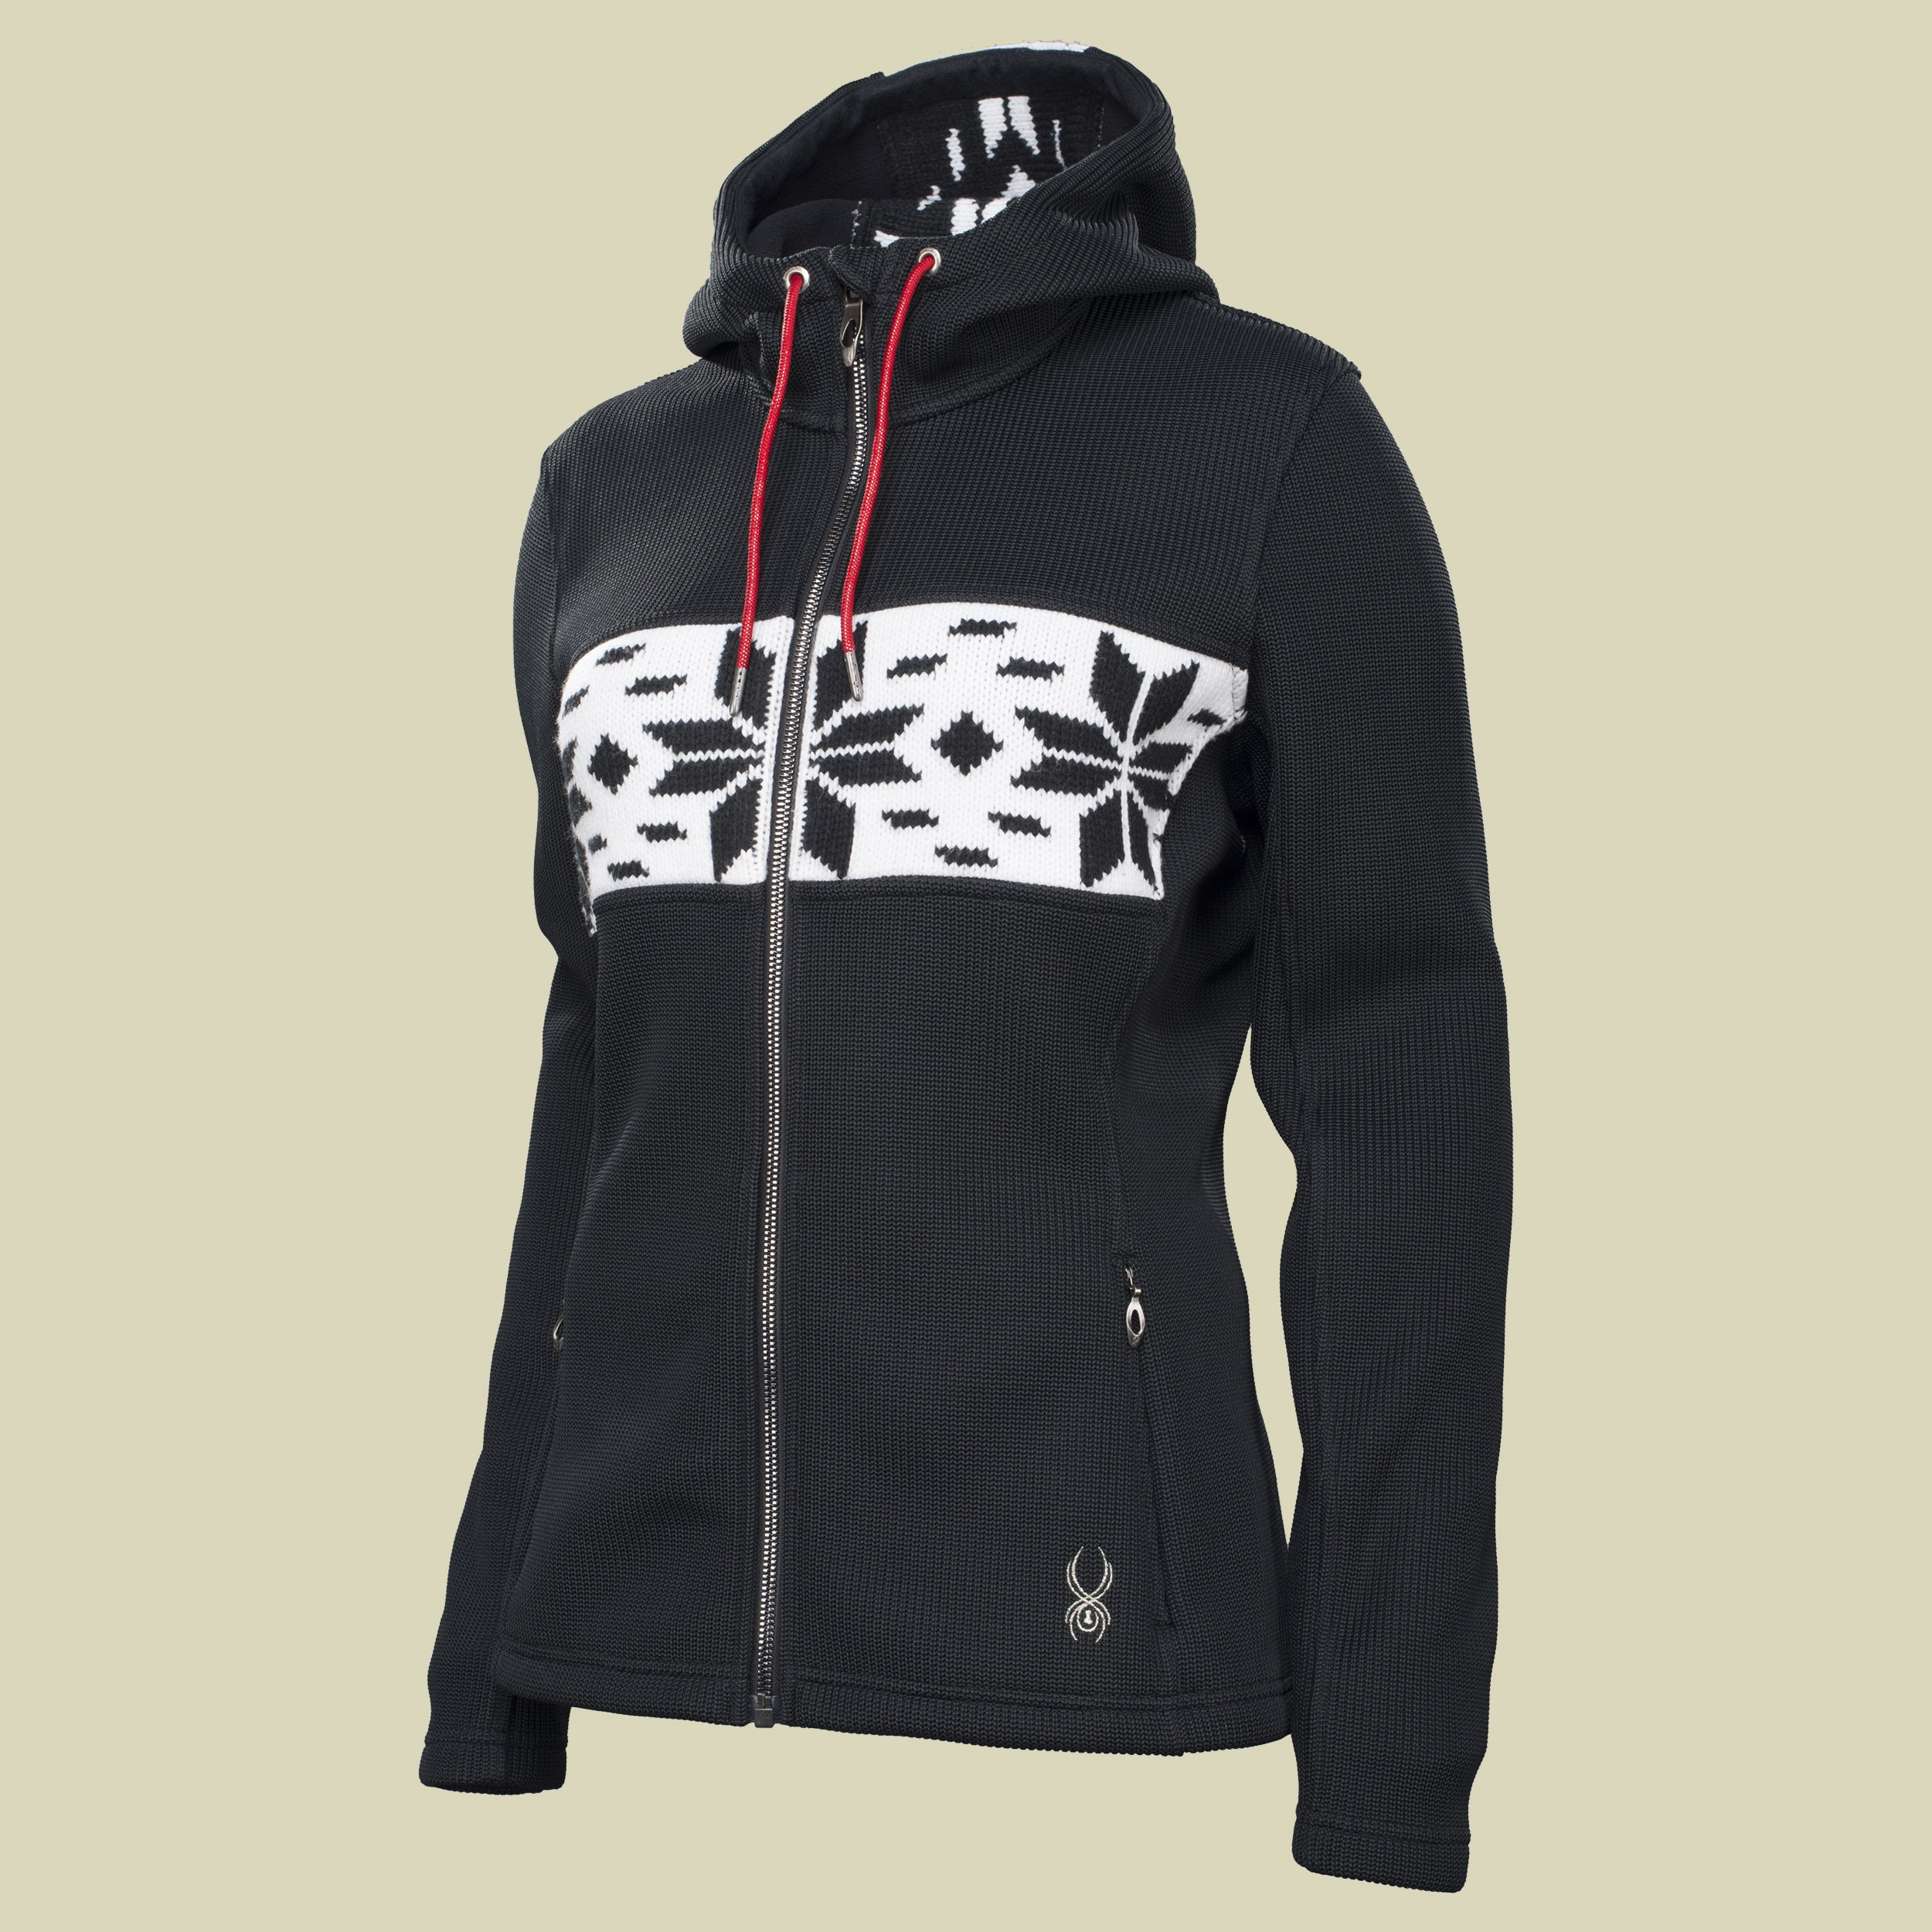 Soiree Hoody Mid WT Core Sweater Women